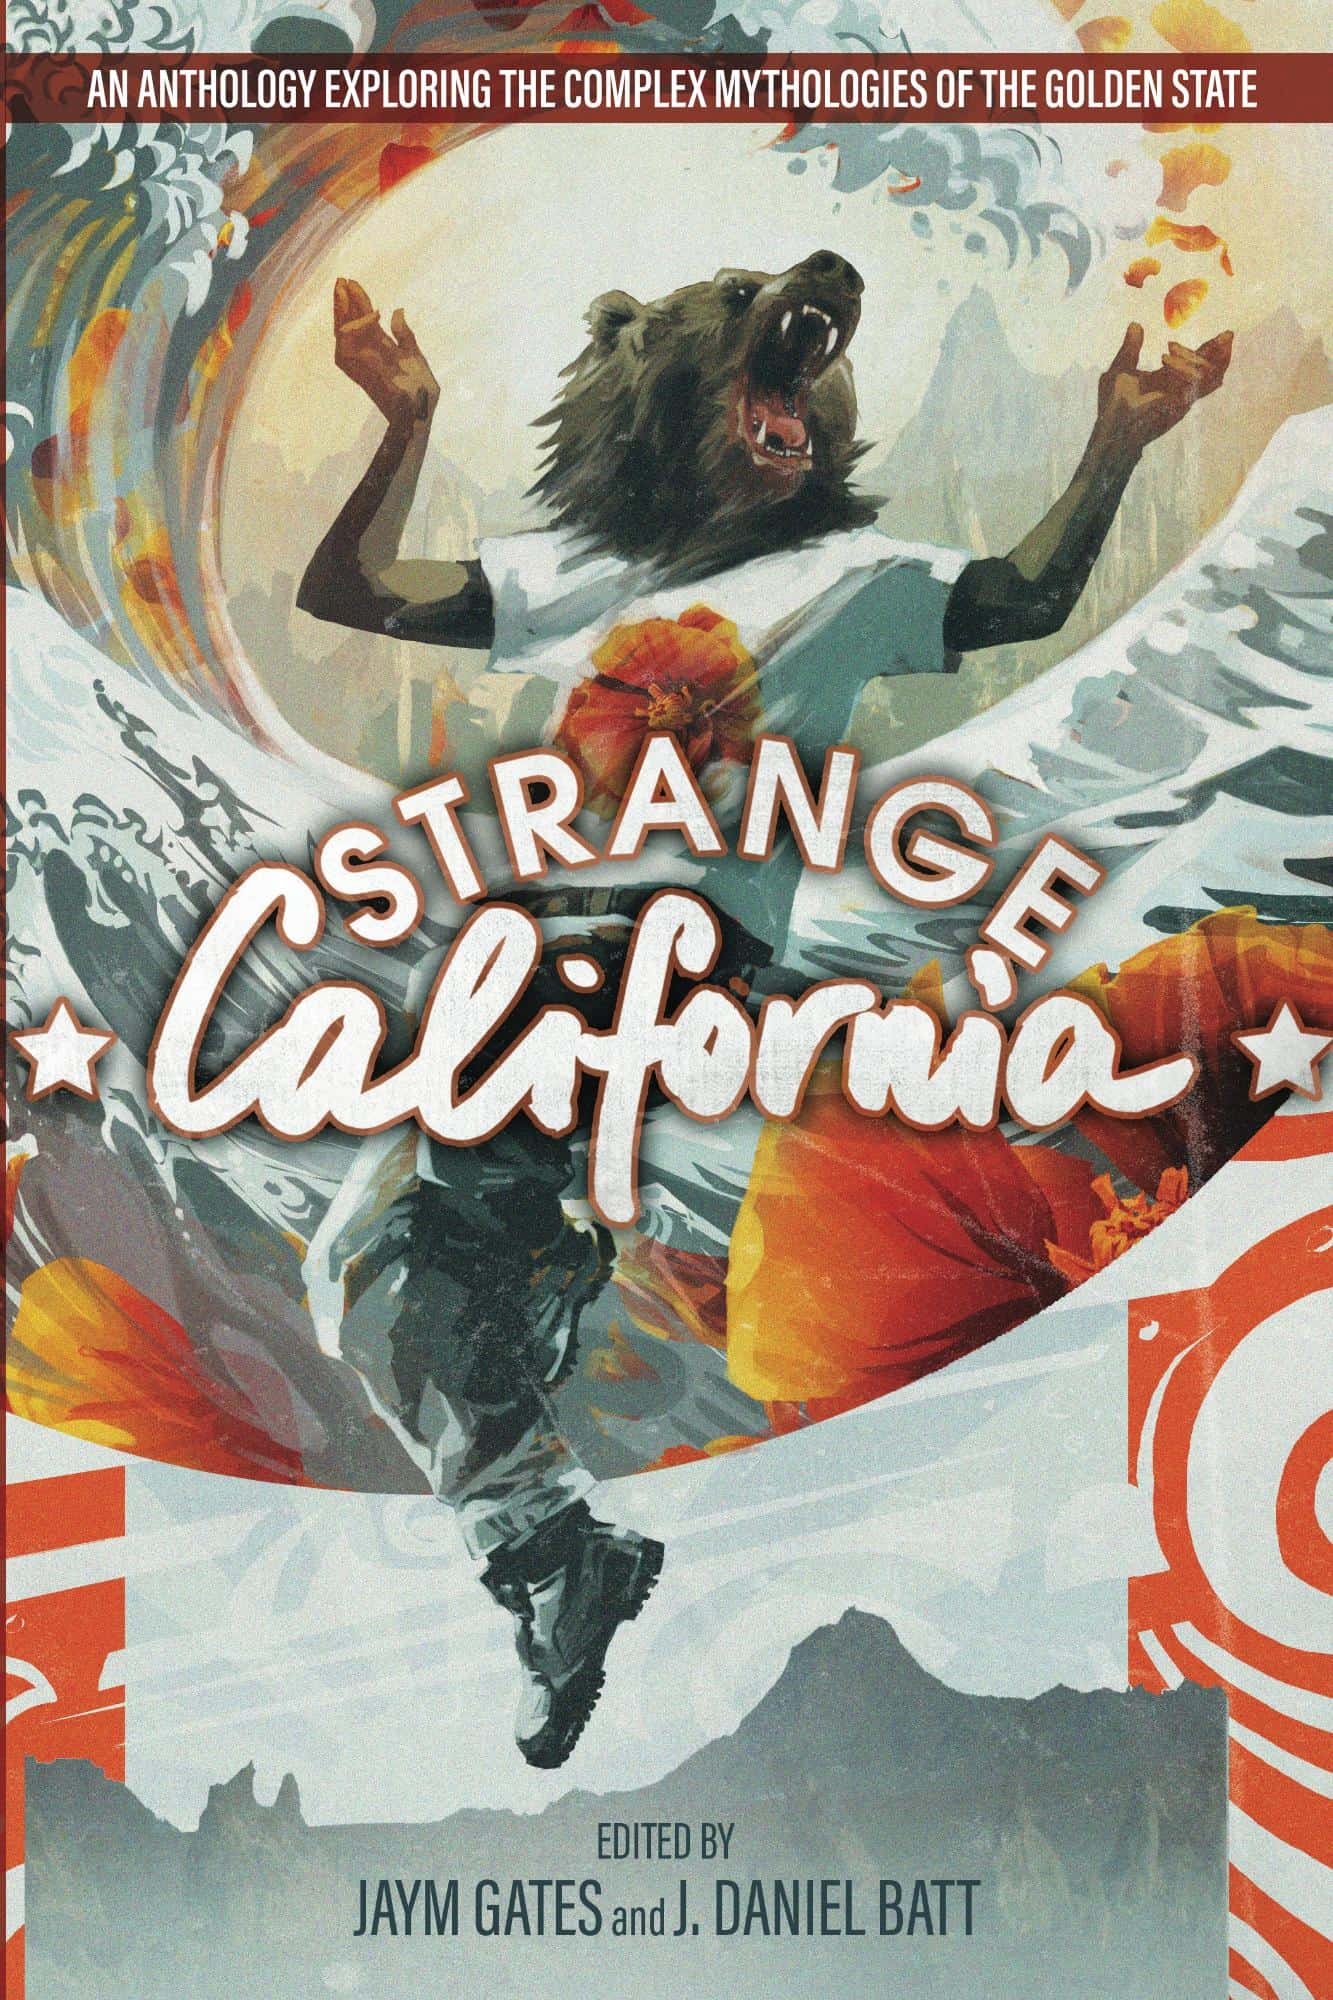 Strange California  cover art by Galen Dara; cover design by J. Daniel Batt